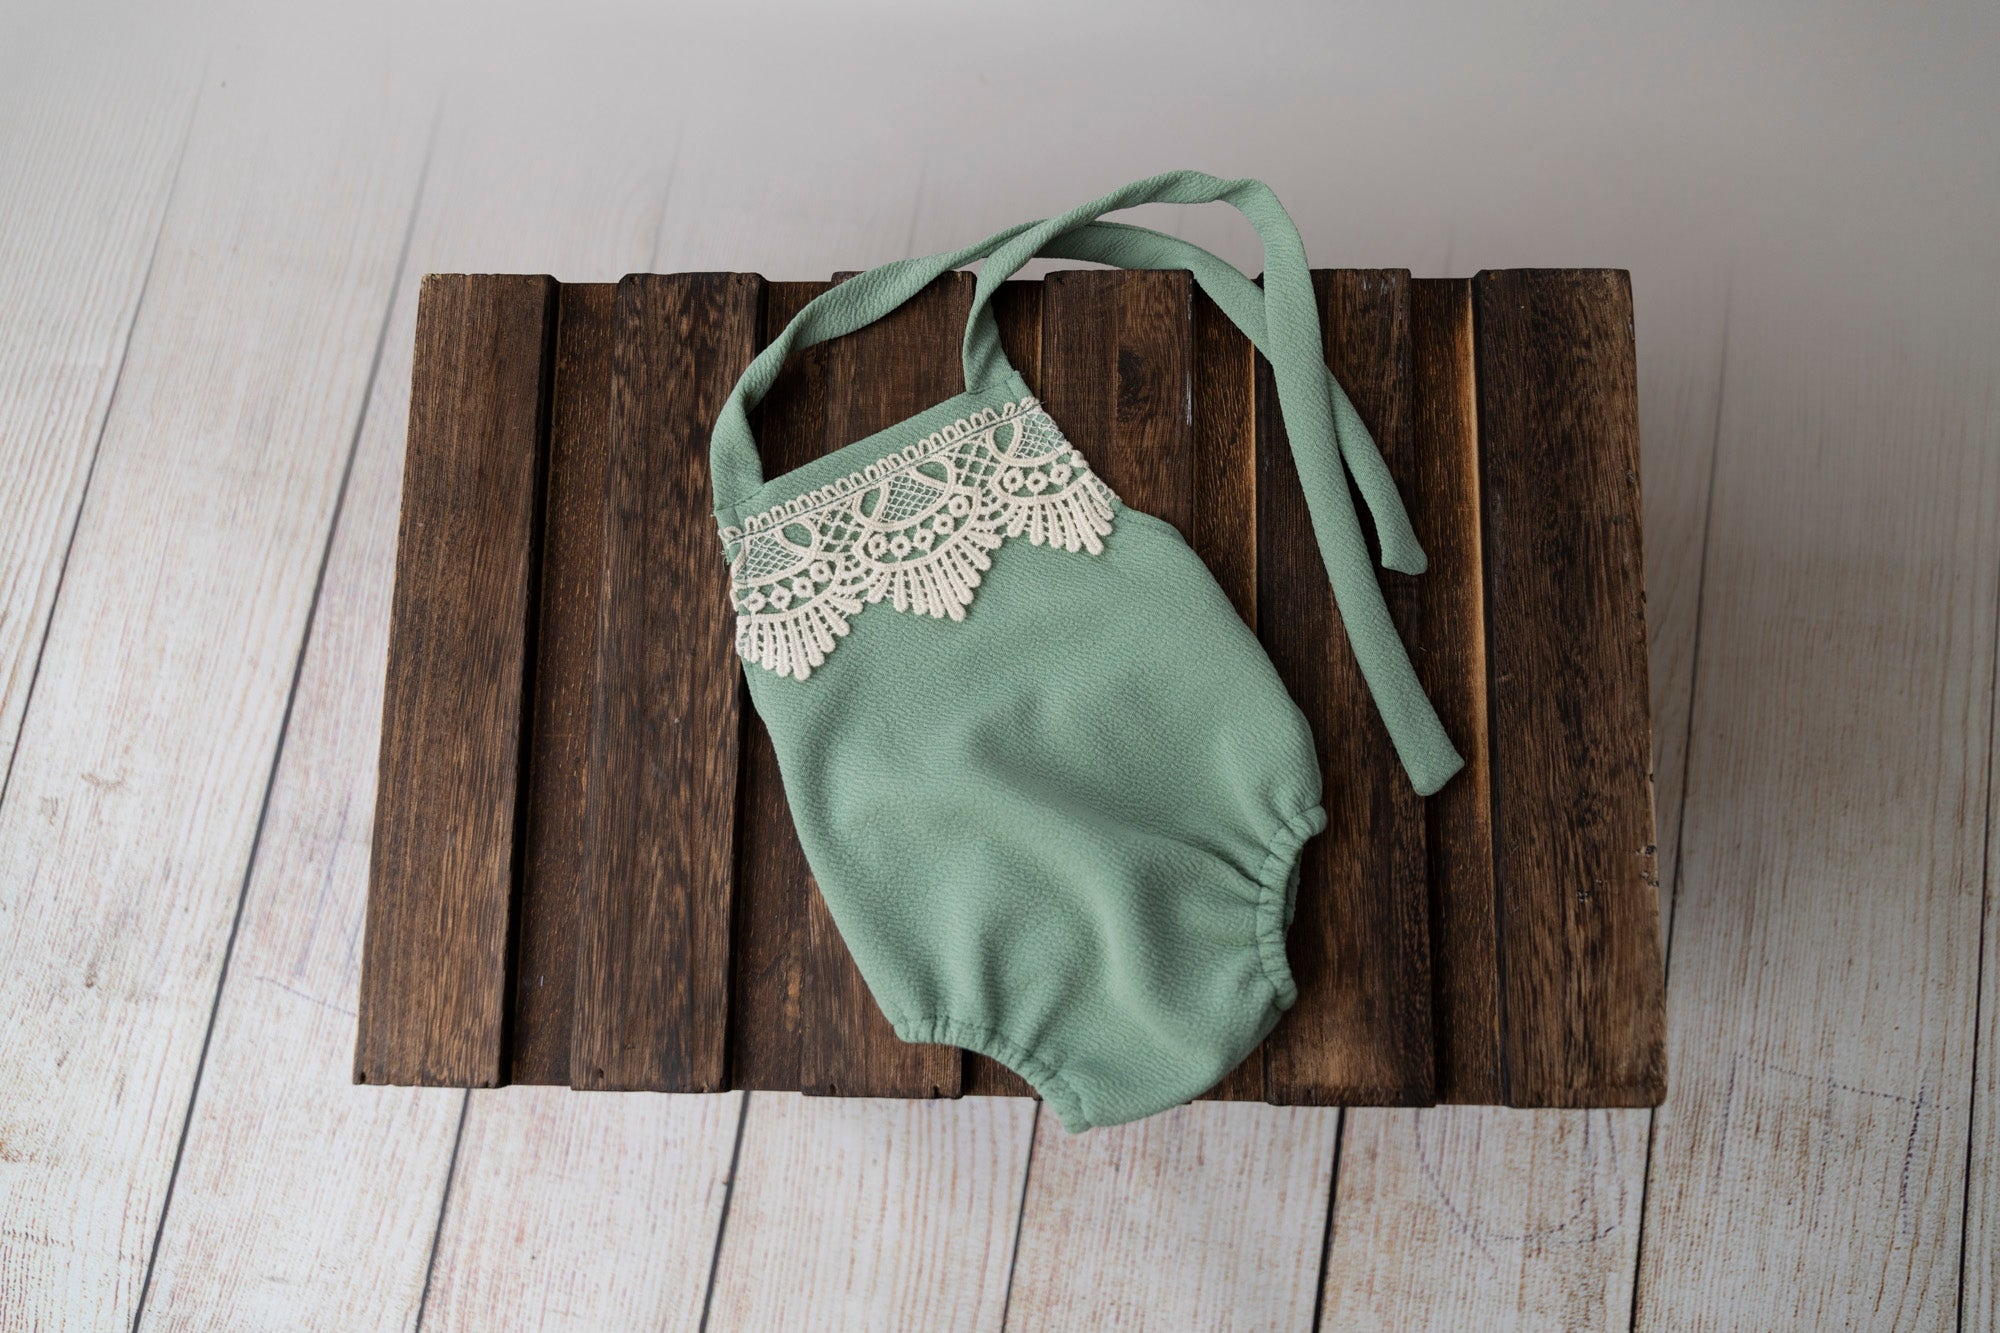 Bohemian Stitch Romper with Lace - Textured - Light Olive